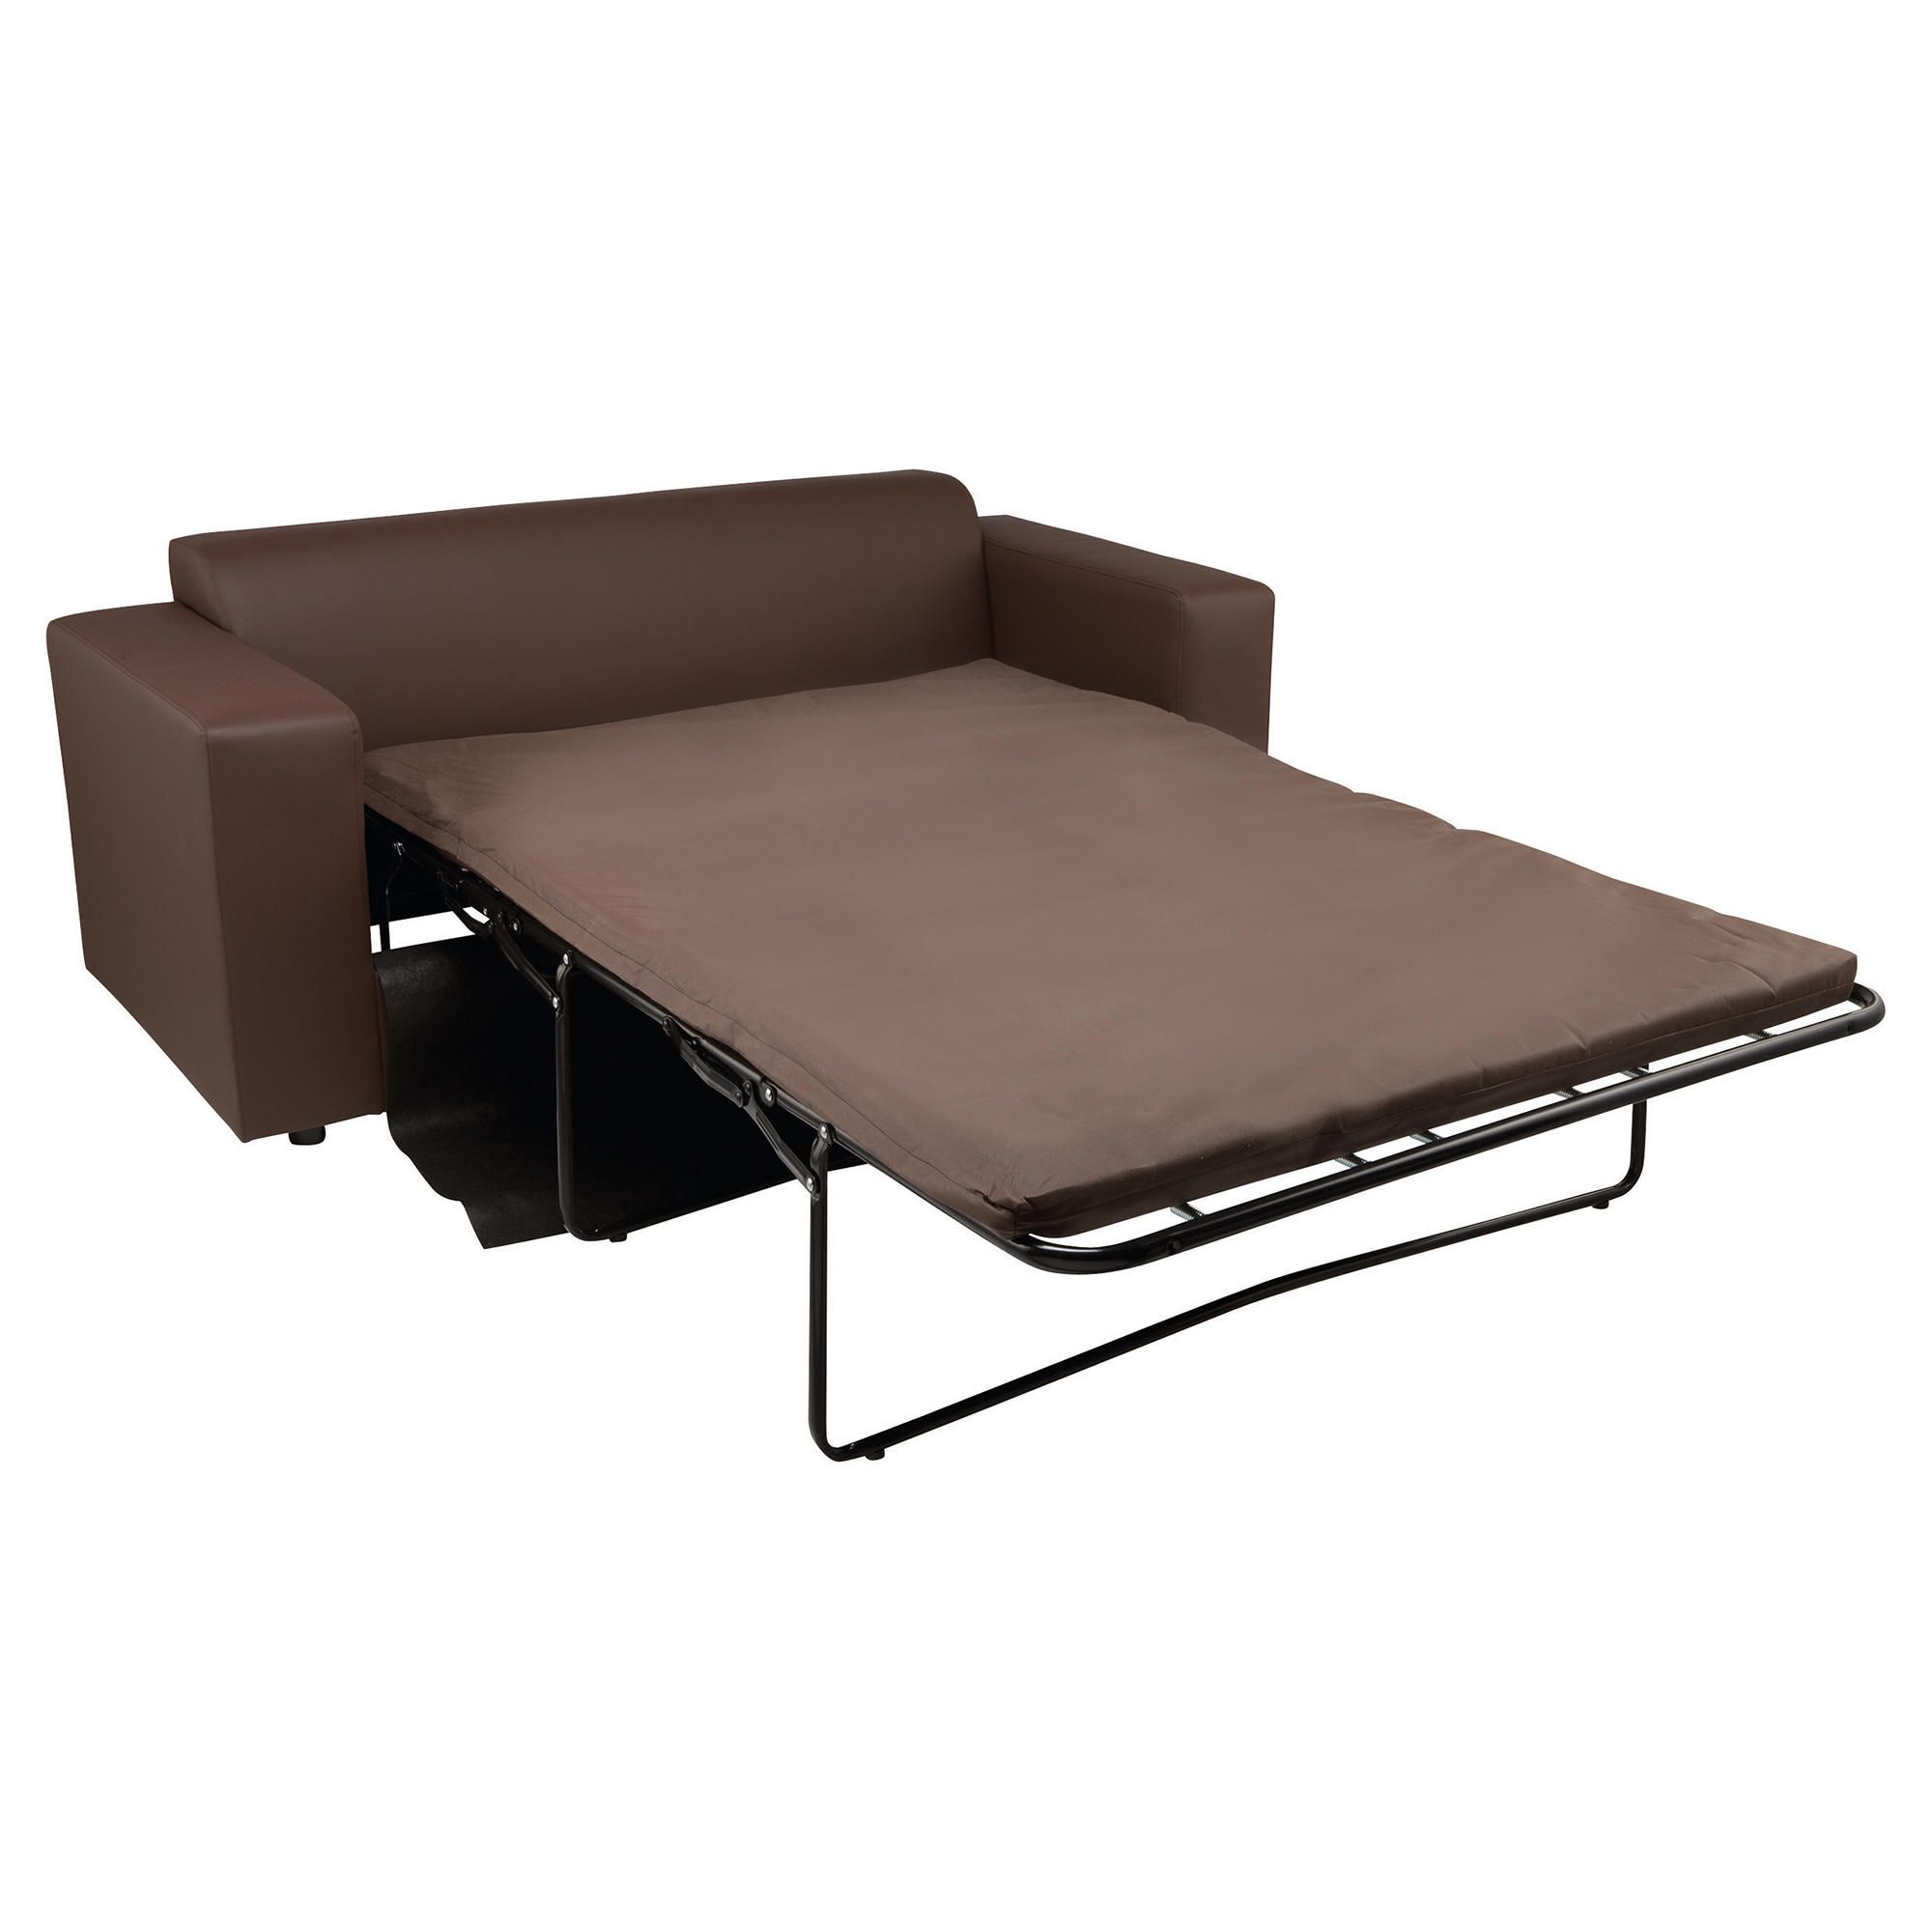 Stanza Leather Effect Sofabed Chocolate at Tesco Direct